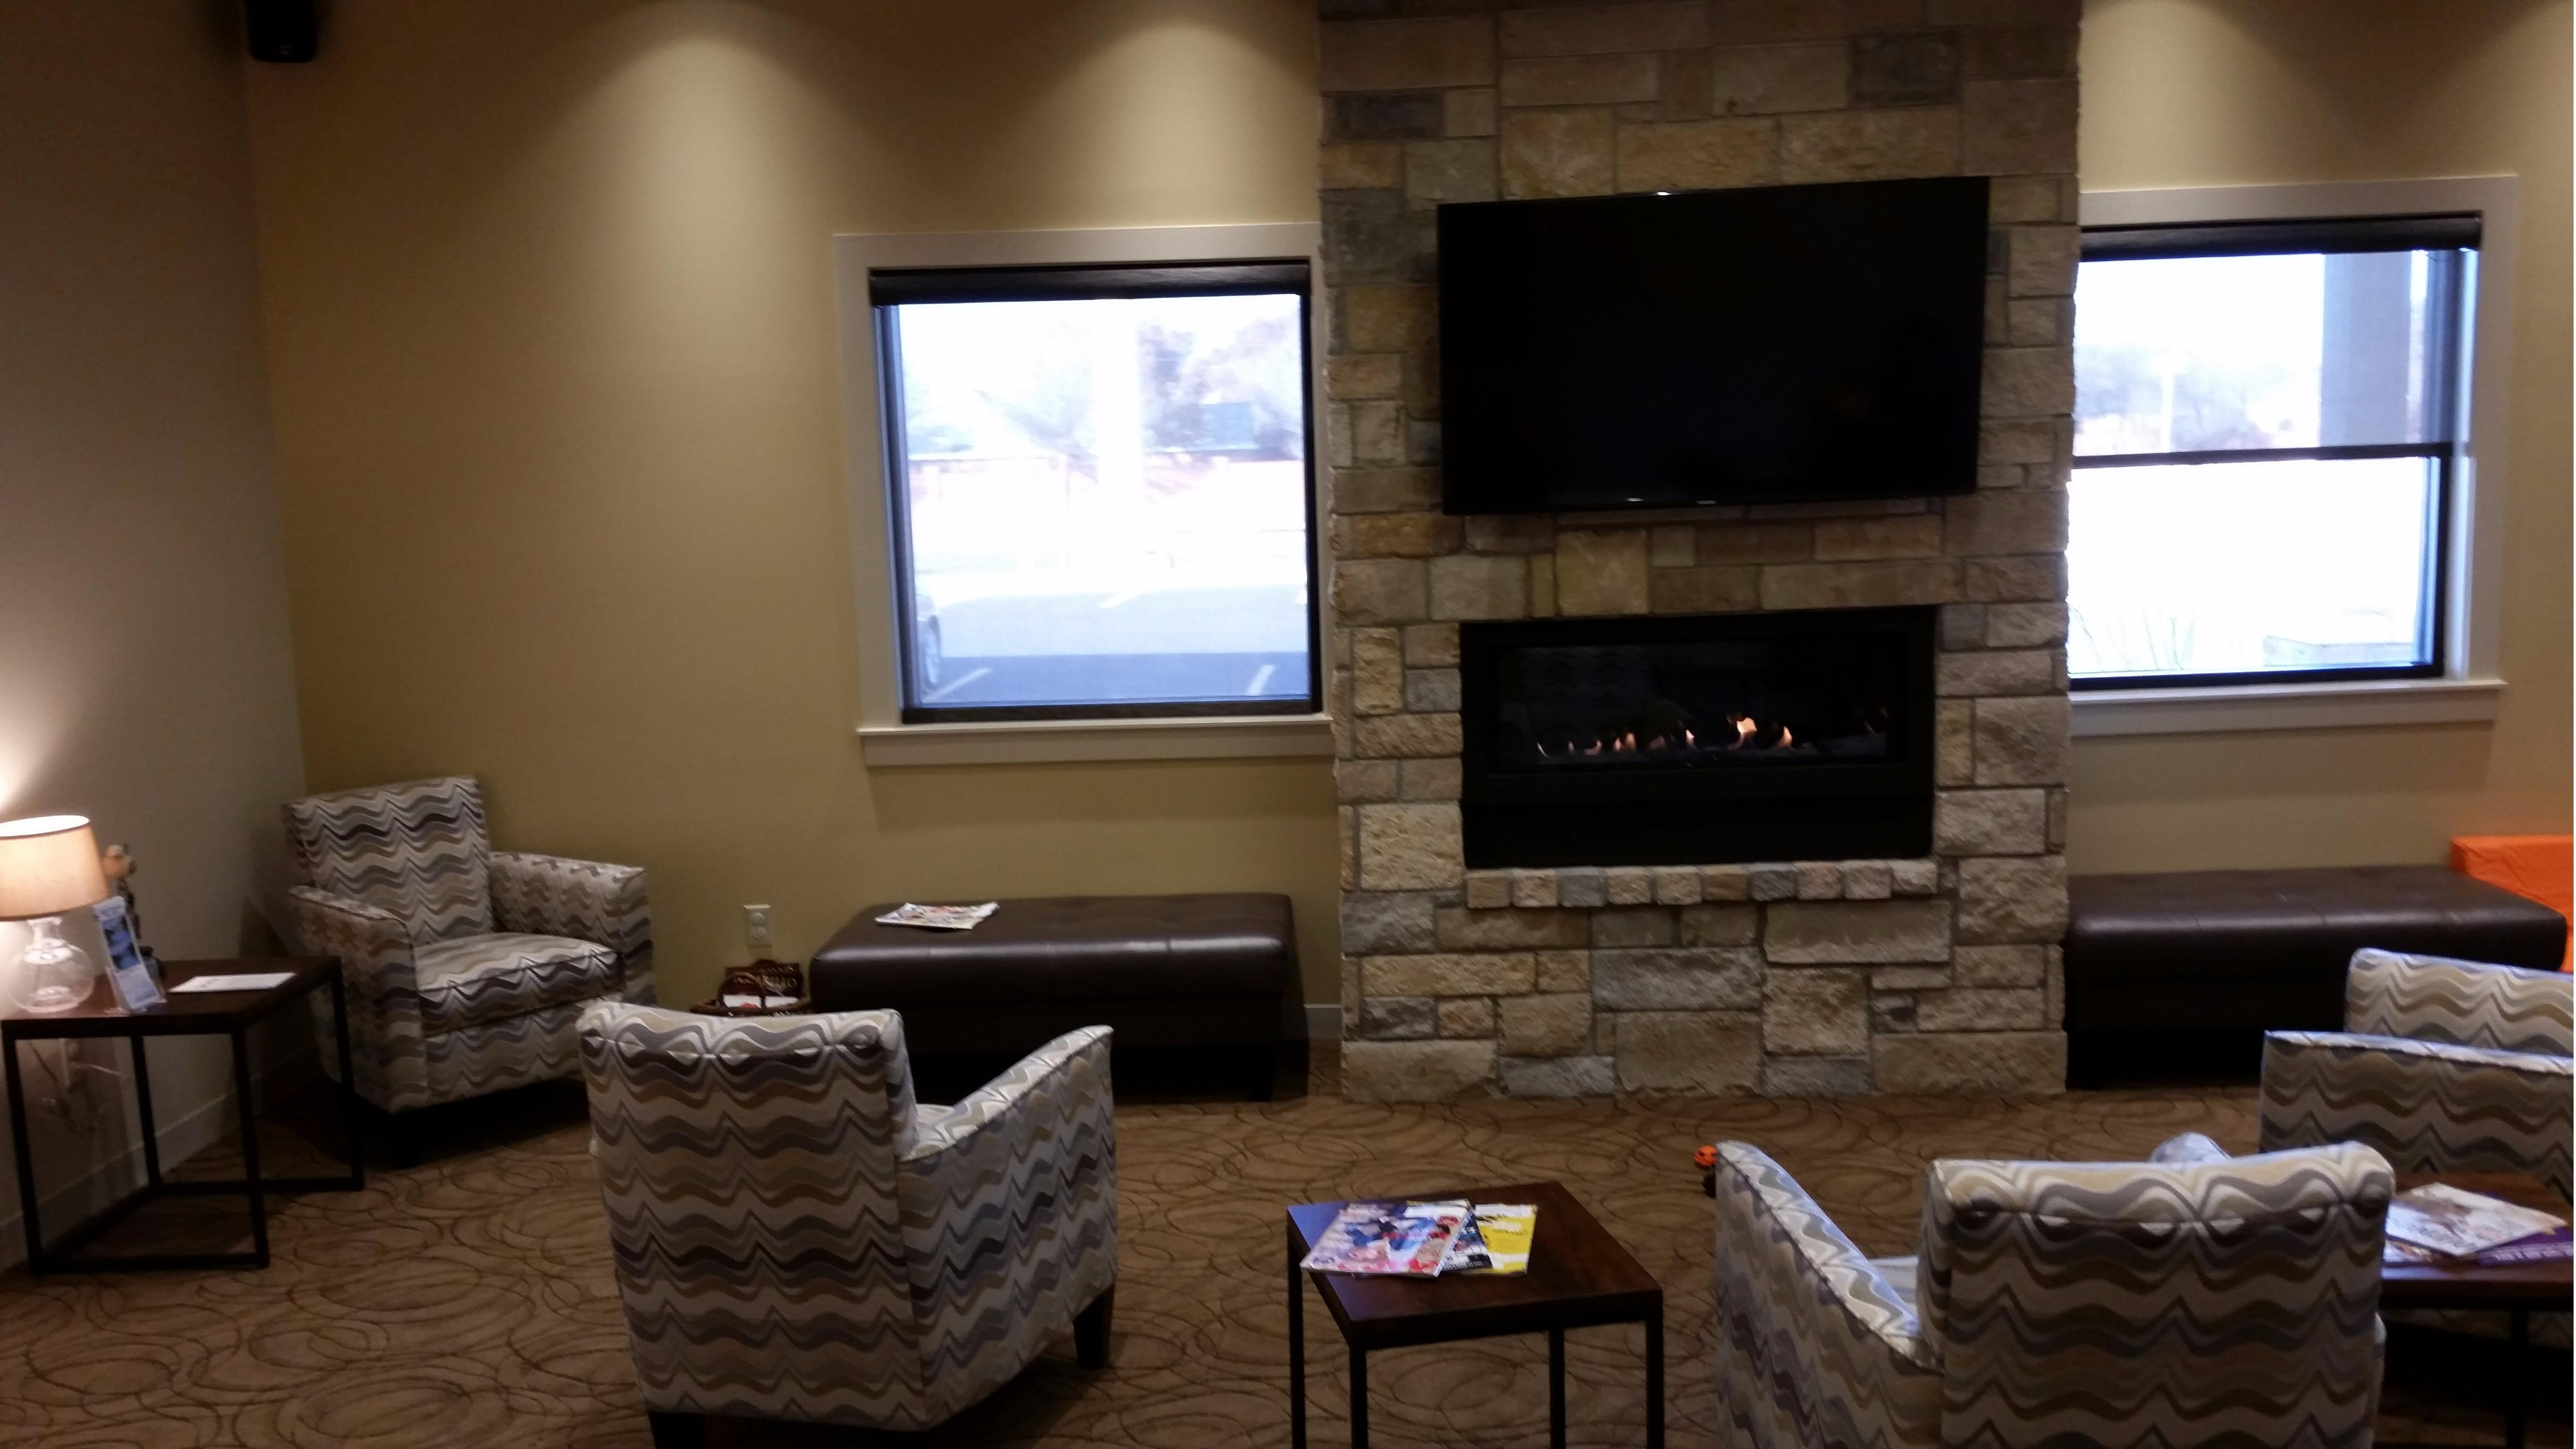 Fireplace in our relaxing area is nice on cold days